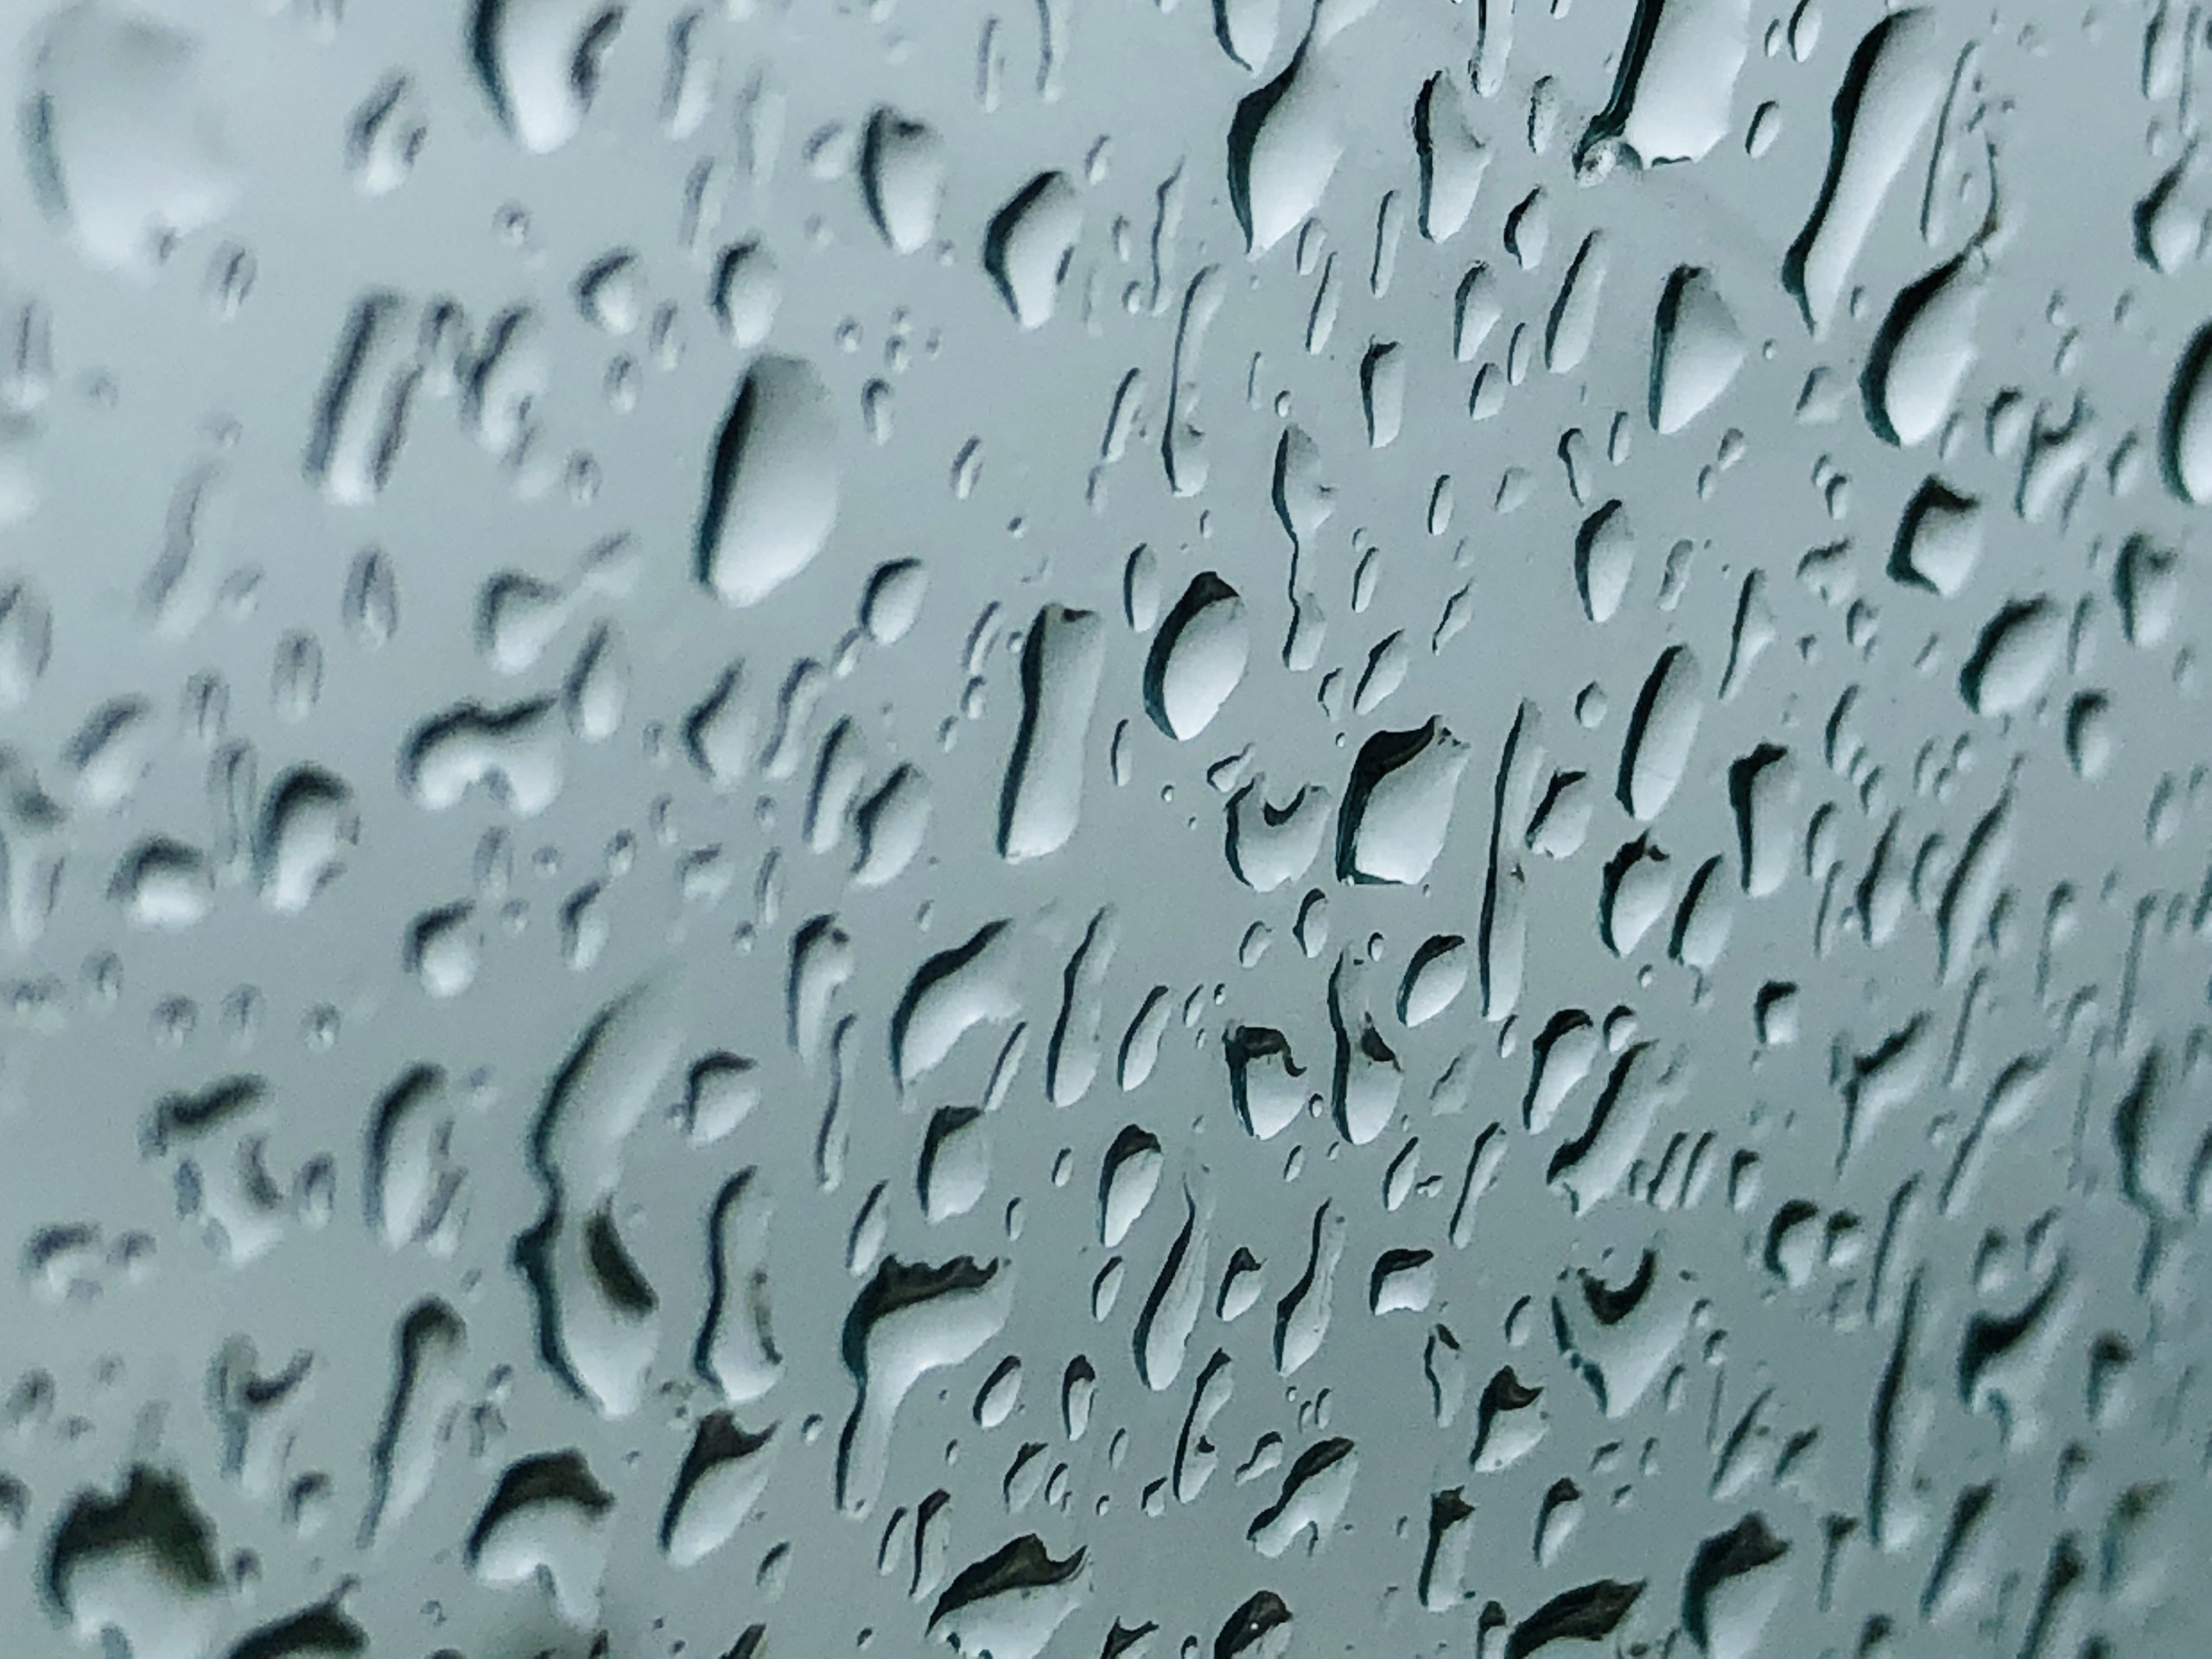 Drops of water on mirror